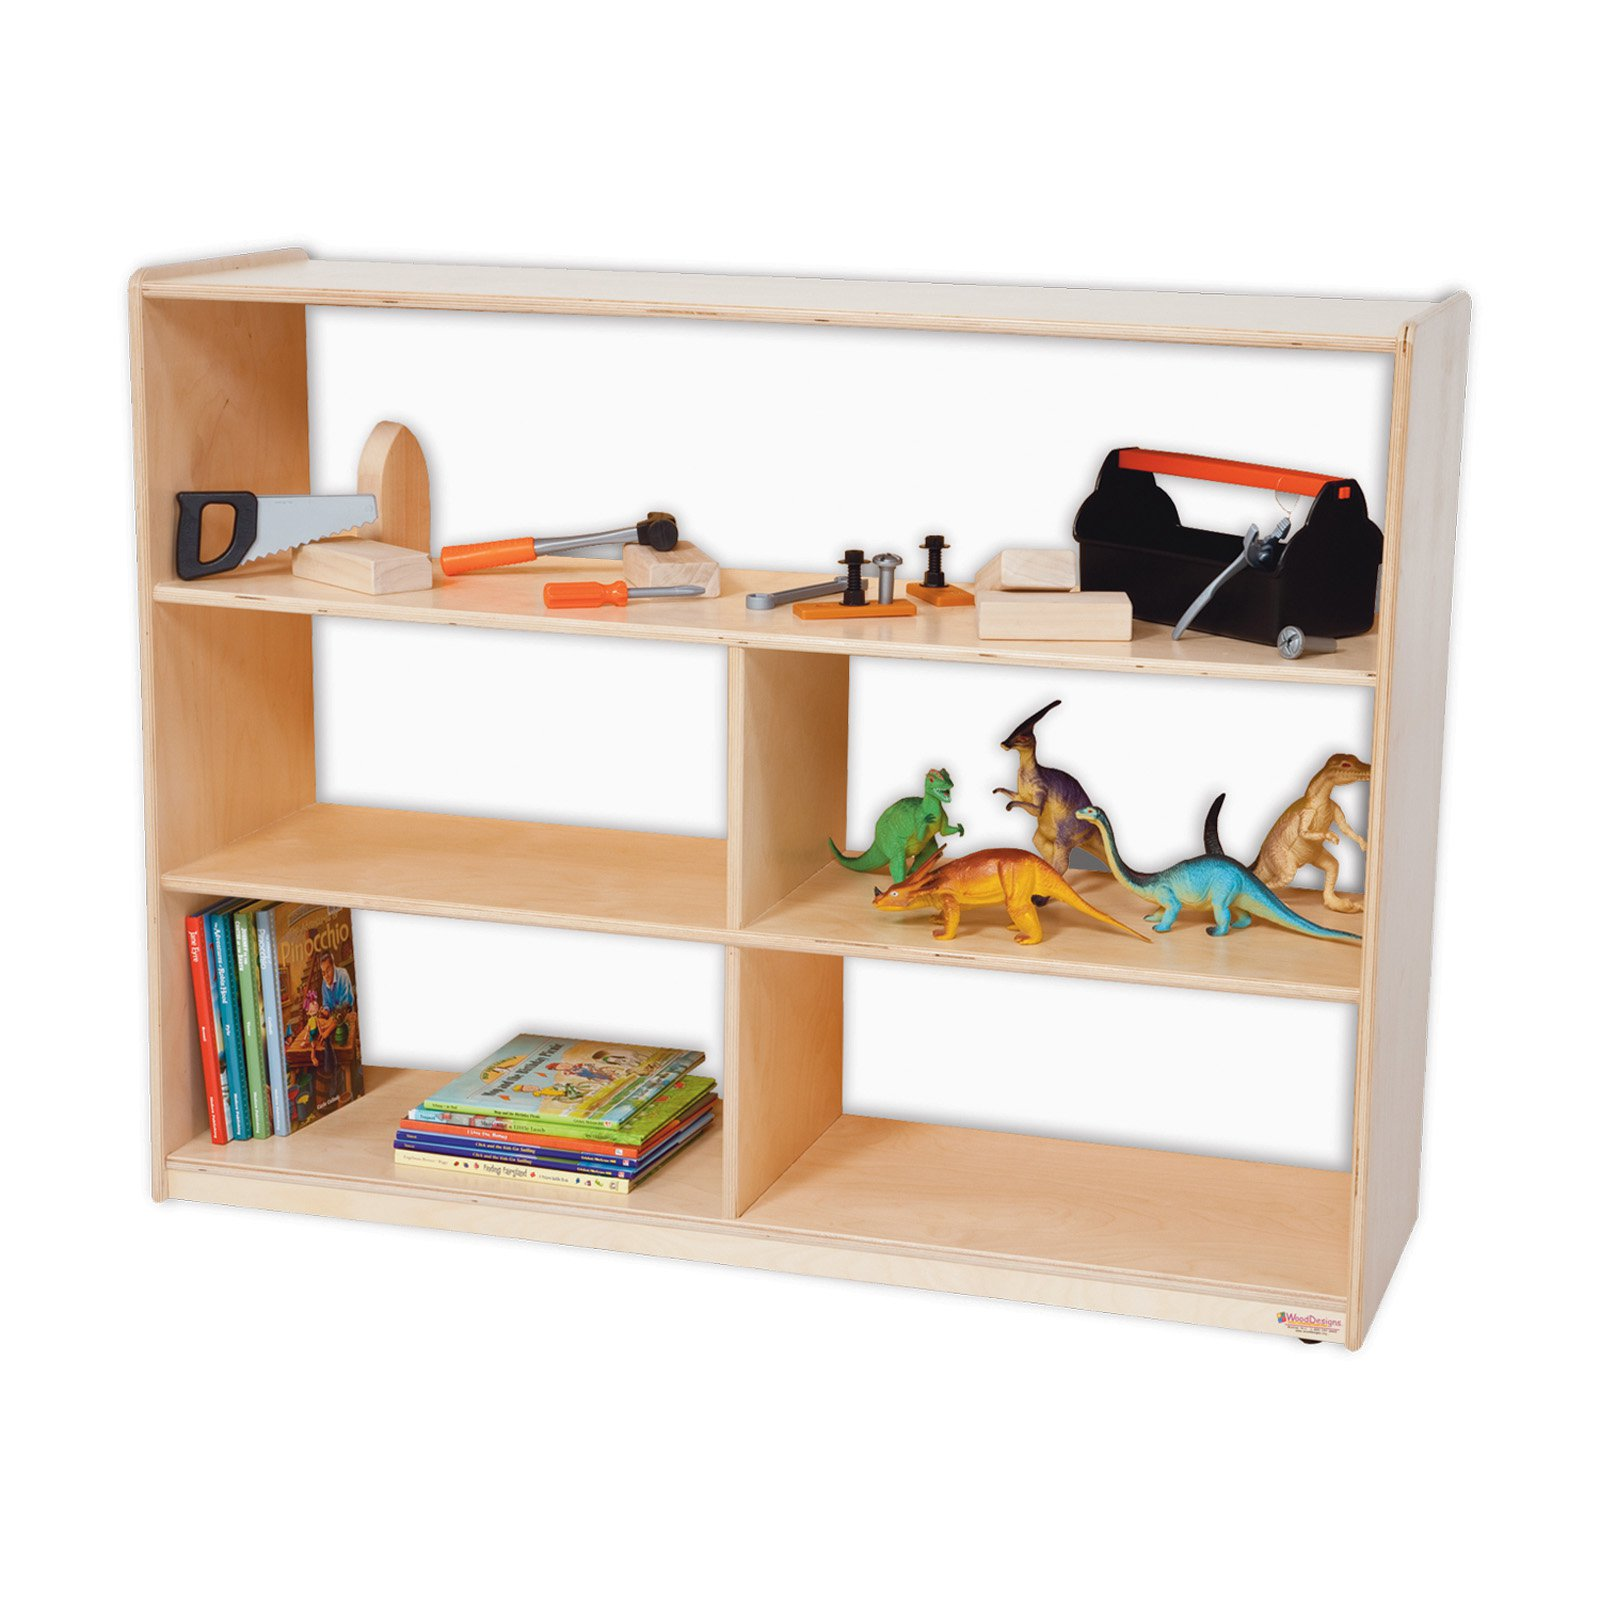 Wood Designs Versatile Shelf Storage with Acrylic Back - 36H in.